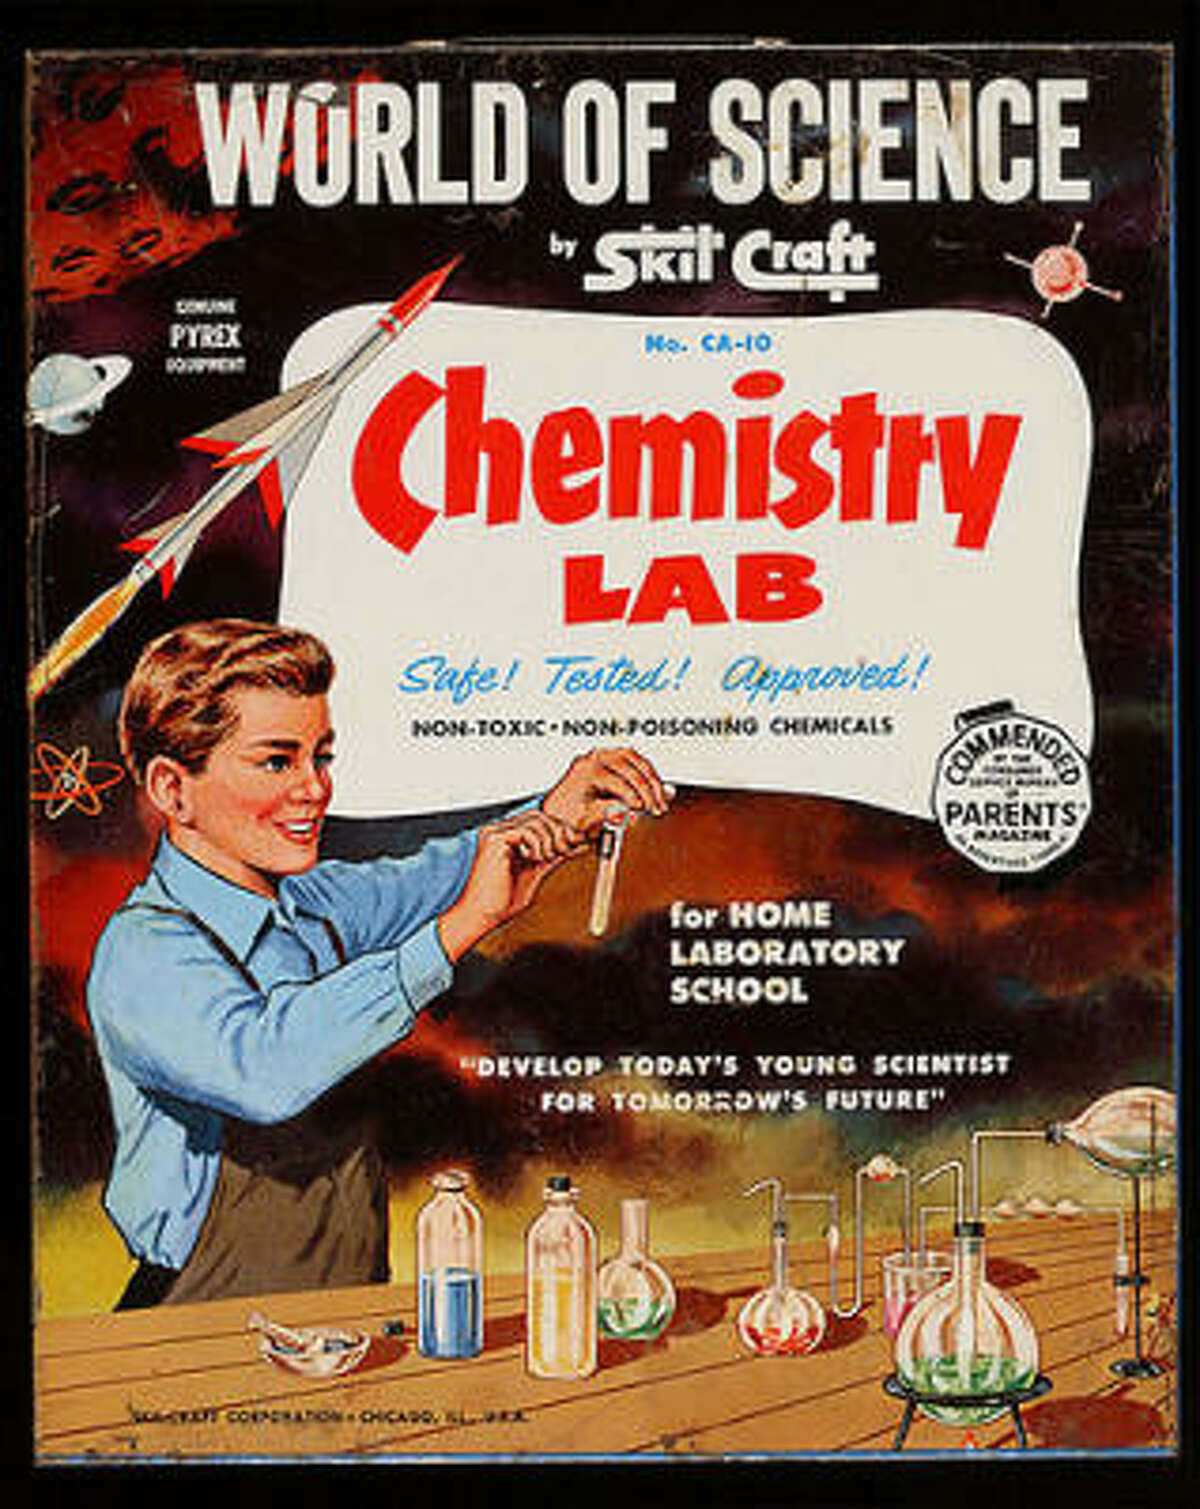 Chemistry sets Credit: x-ray delta one/ Flickr